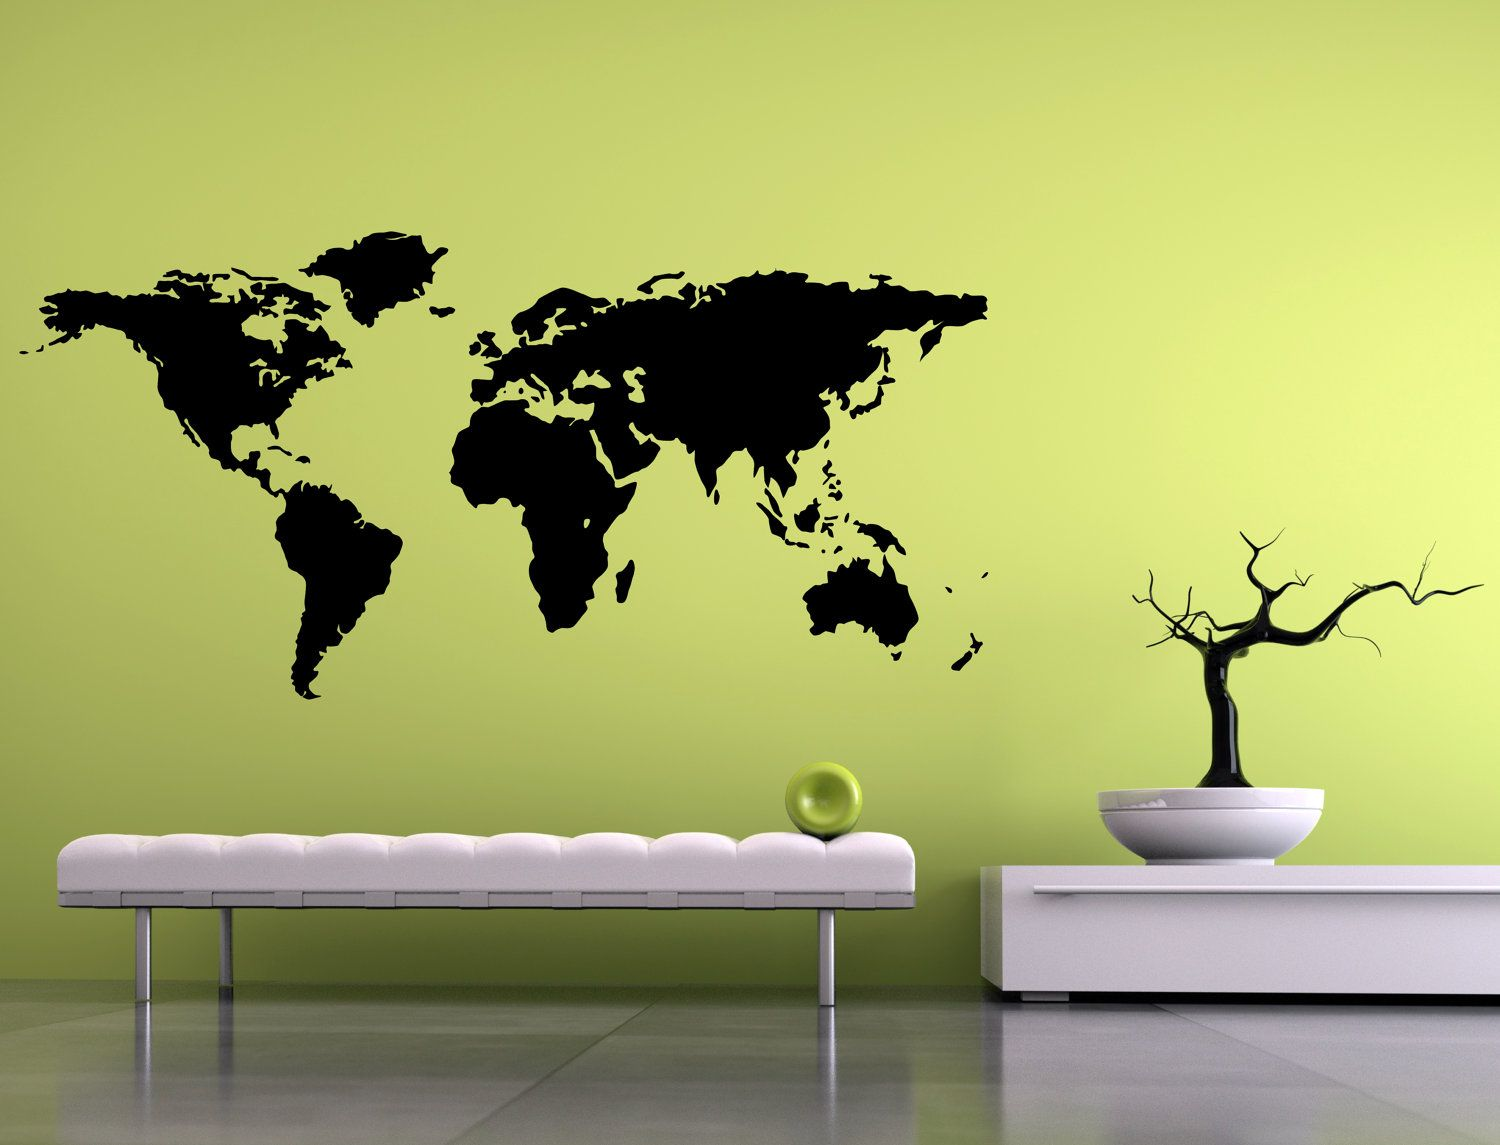 Wall Decal World Map 44\